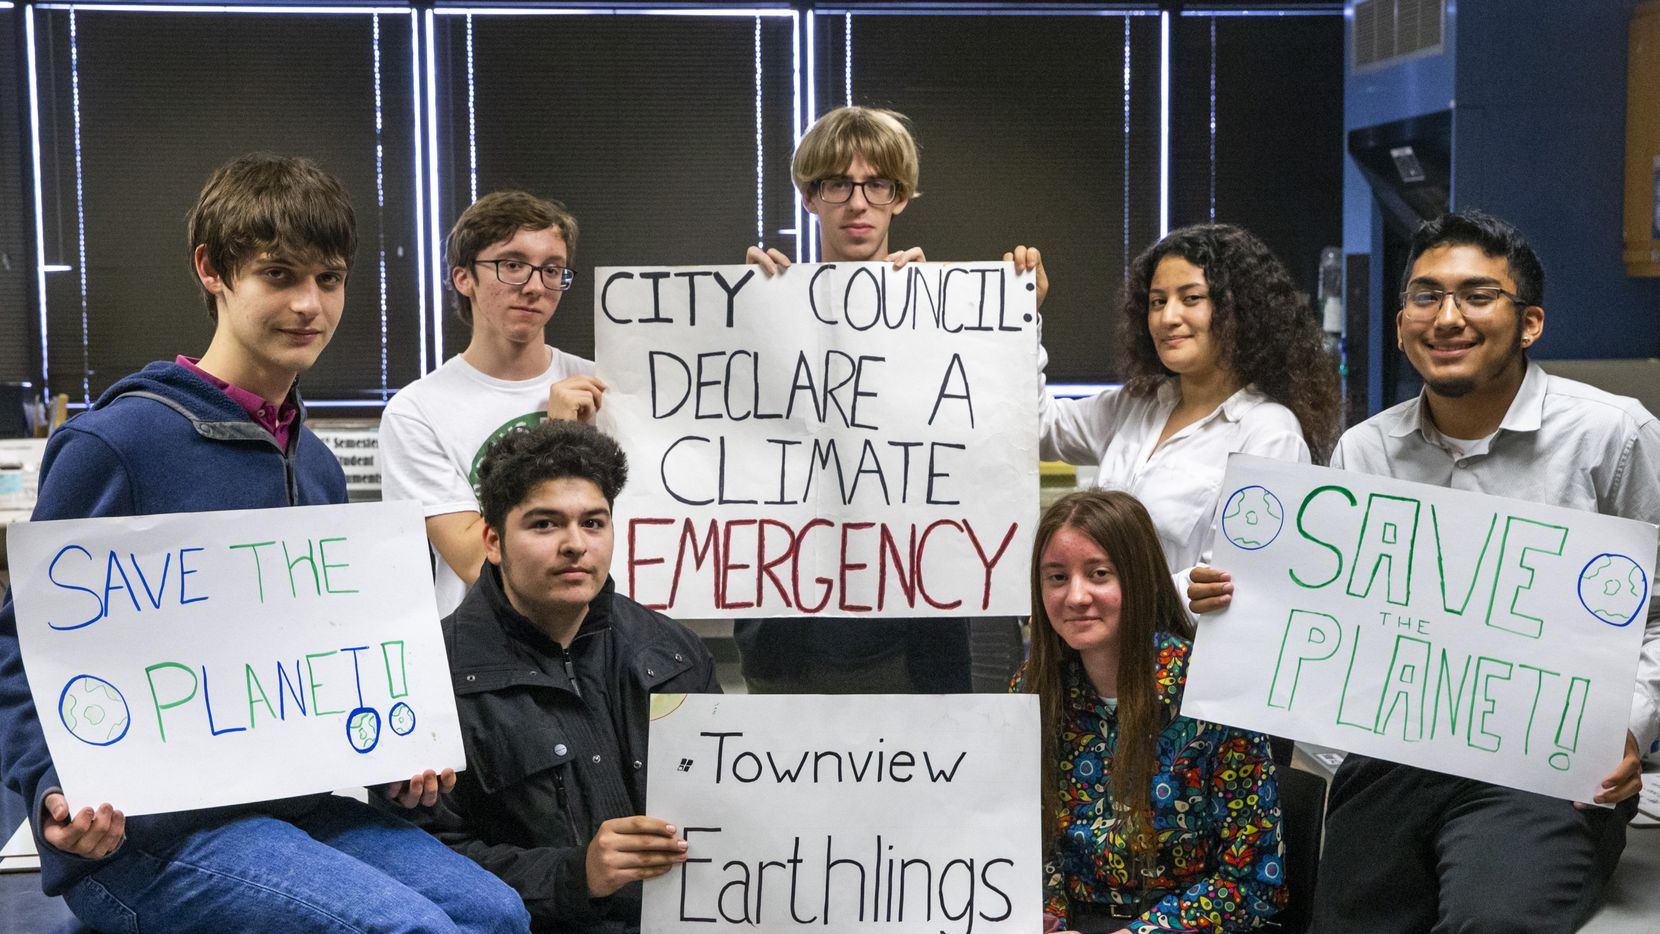 The members of the Earthlings environmental activism club at the Yvonne A. Ewell Townview Magnet Center in Dallas have been organizing to urge local officials to take action on climate change. From left to right: Drew Easley, Richard Herrera, Jonathan Cartwright, Gideon Krieger, Janet Shuey, Claudia Gomez and Brandon Hernandez.